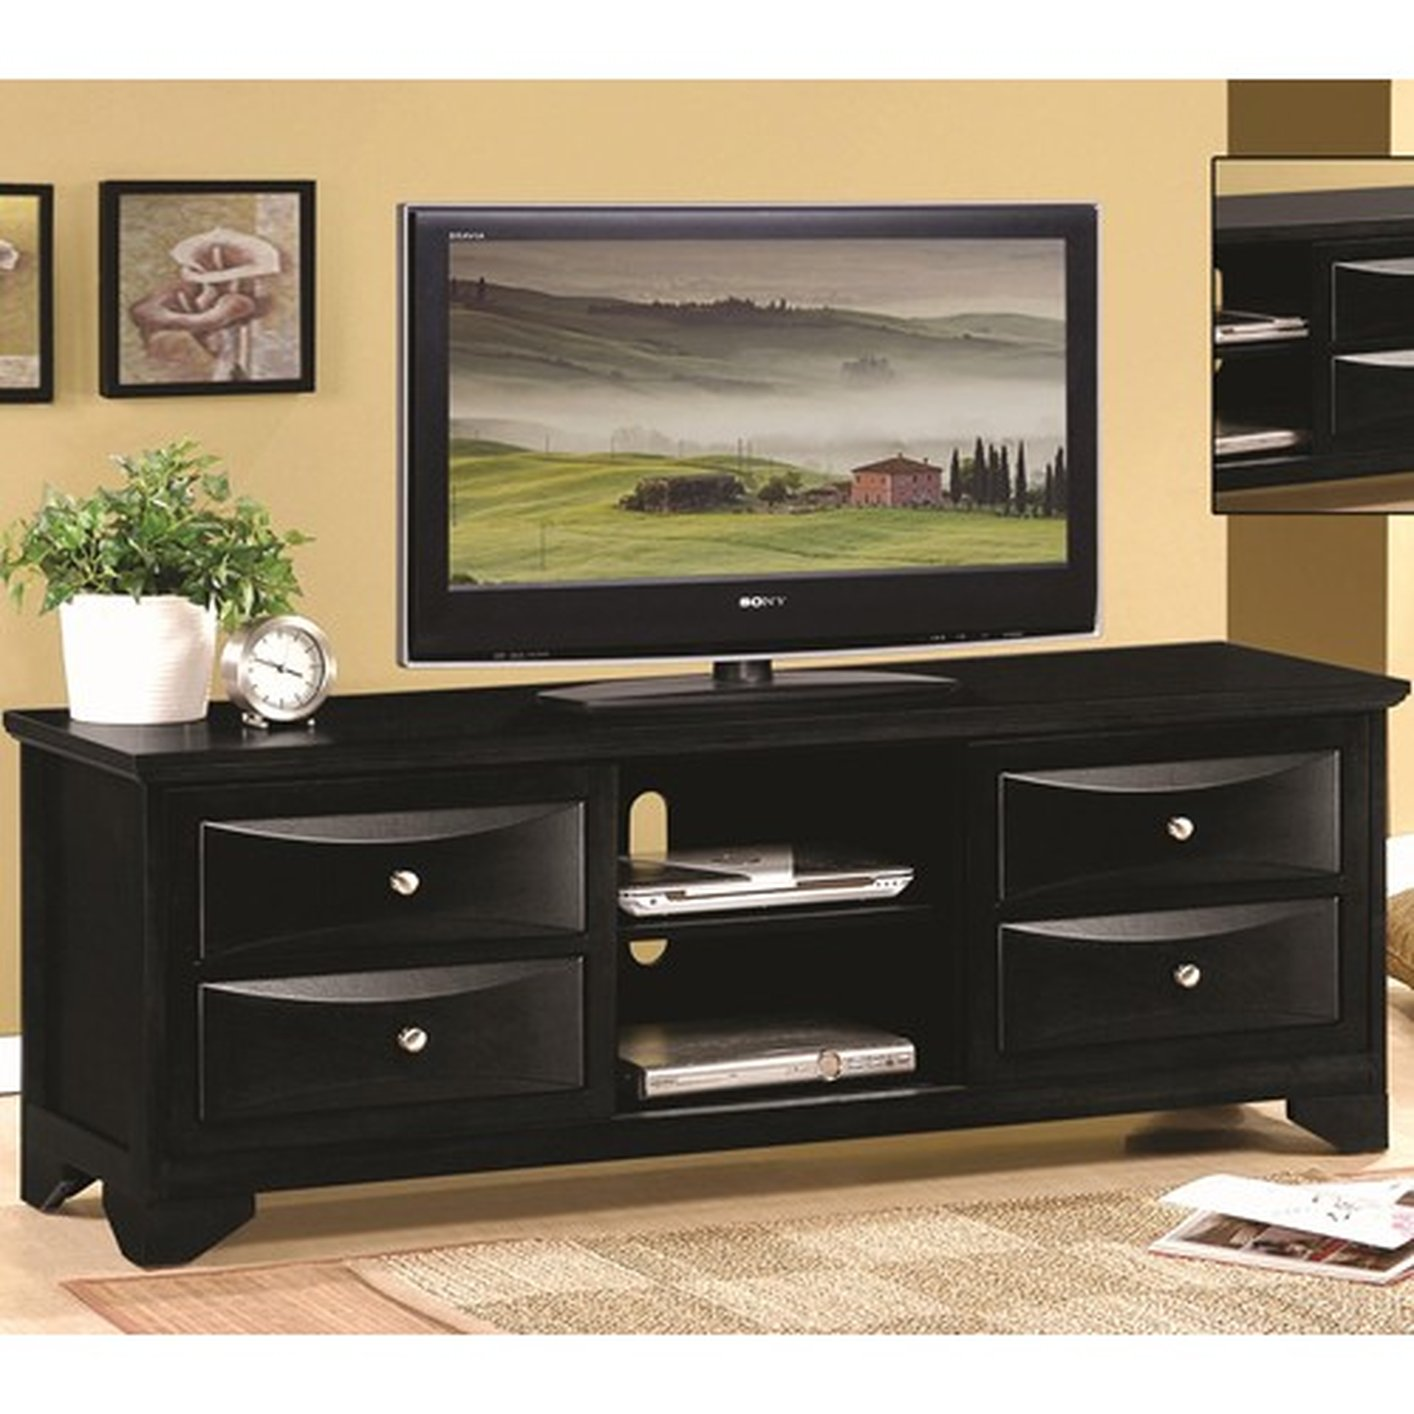 Coaster 700726 Black Wood TV Stand Steal A Sofa